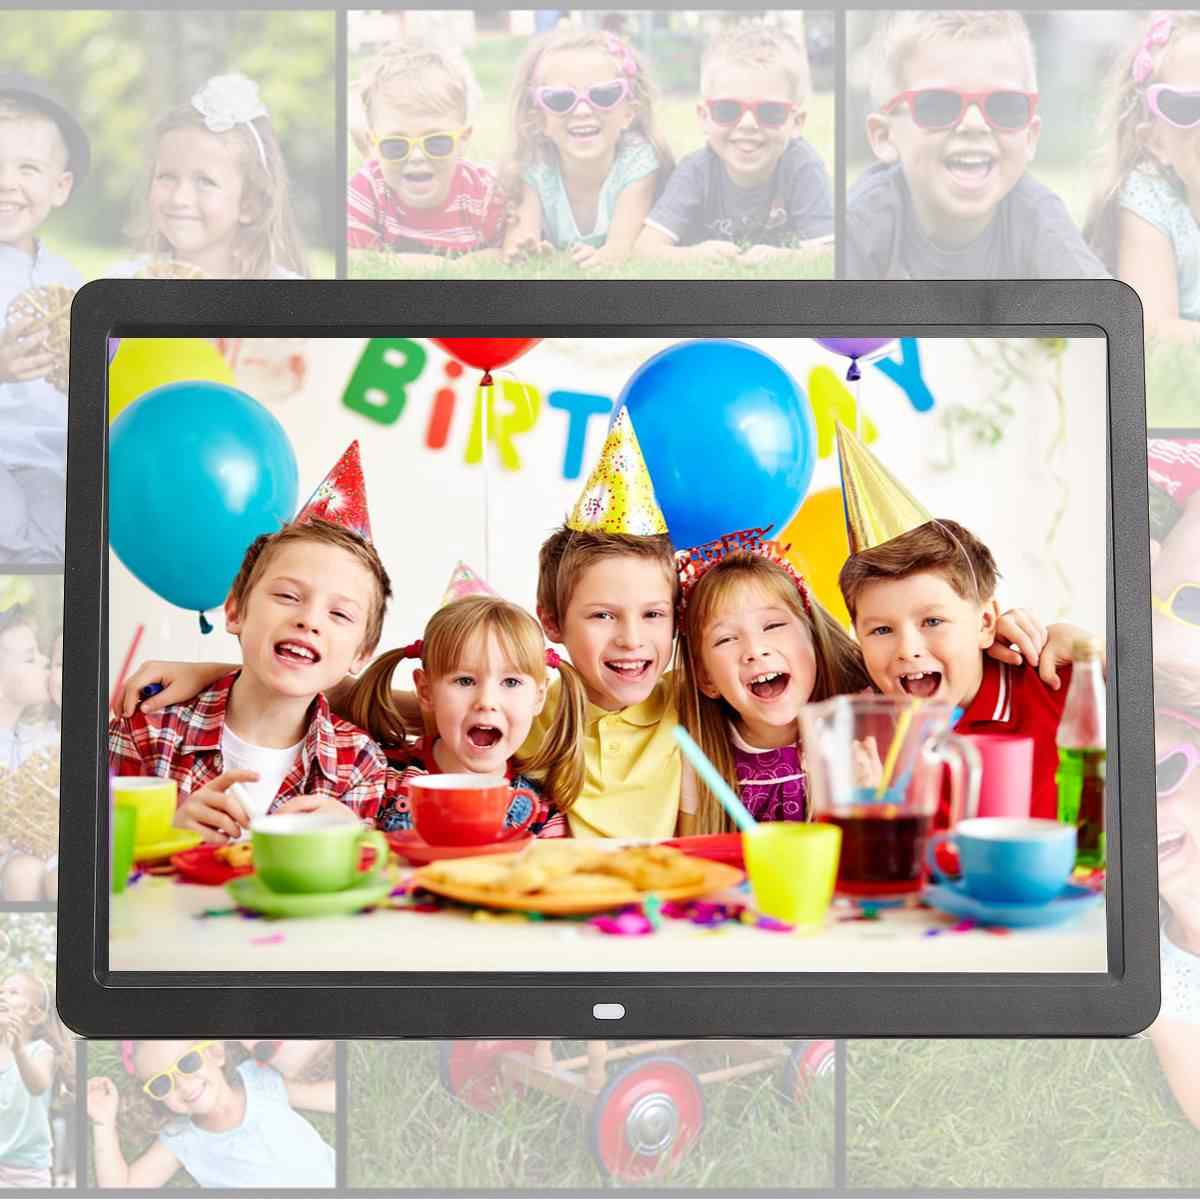 15.6 inch HD Digital LED Photo Frames Gallery Advertising Machine with Remote Control Electronic Album Picture Music Movie